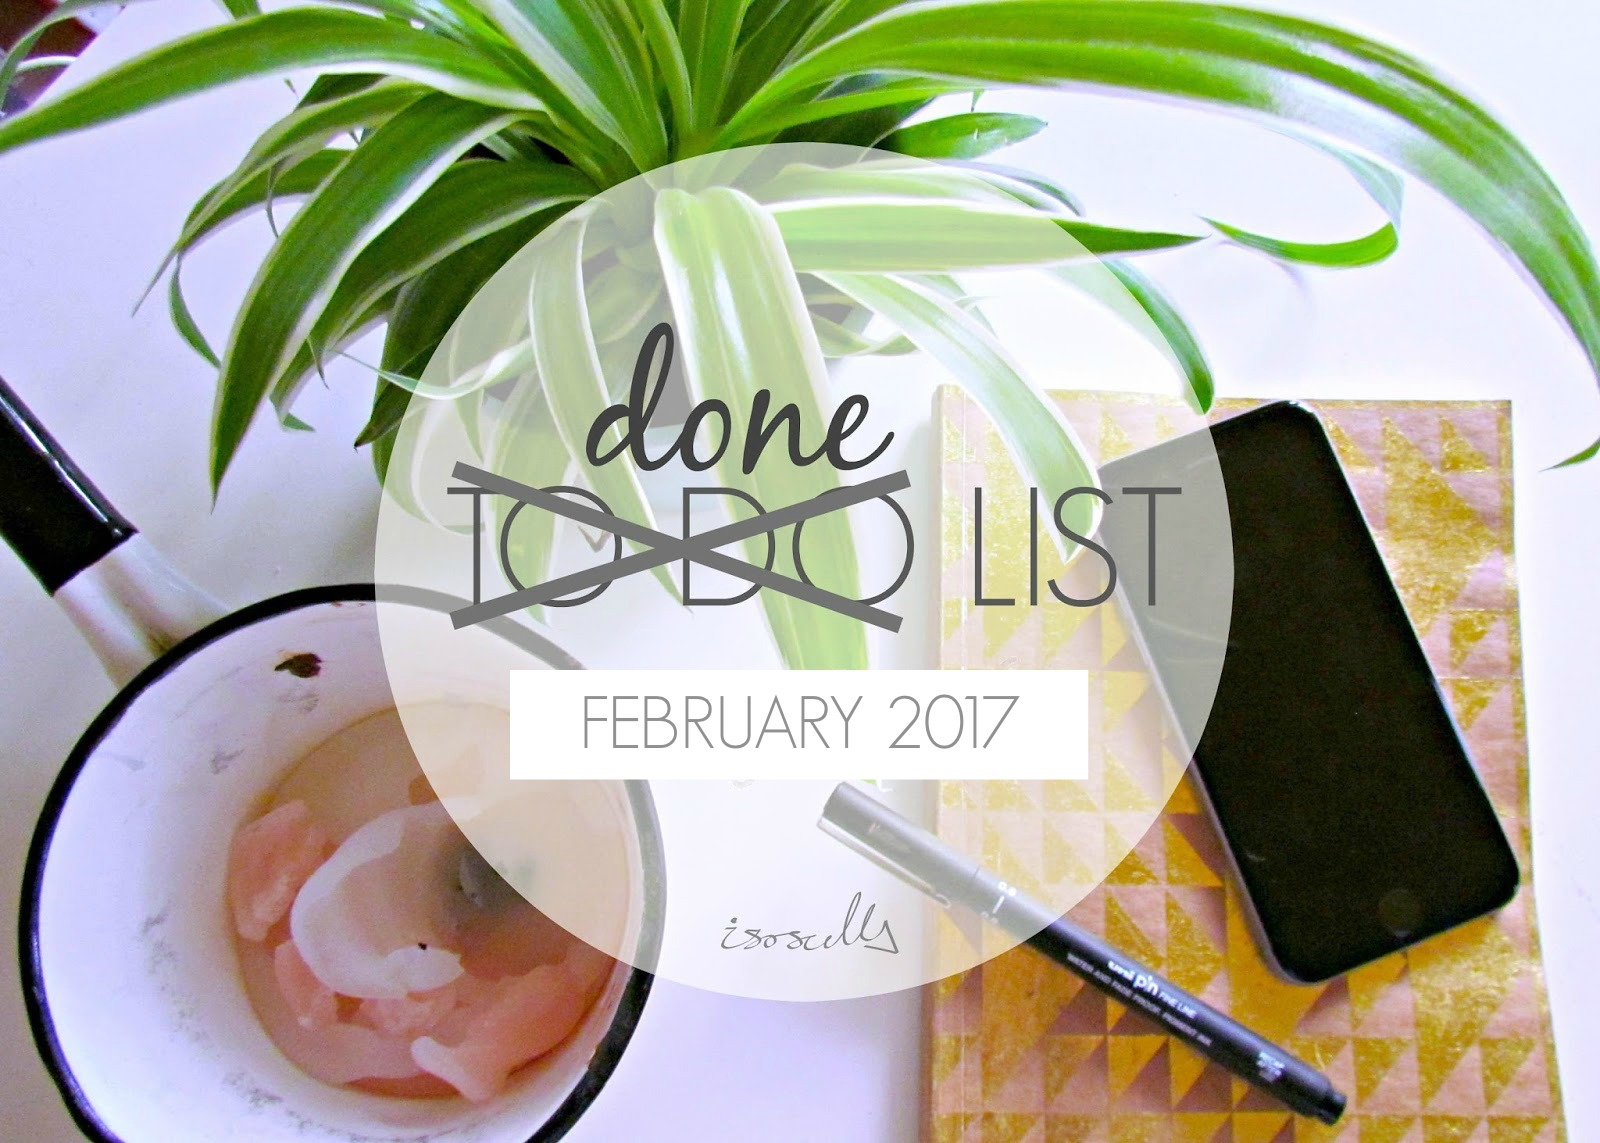 Done List February 2017 by Isoscella